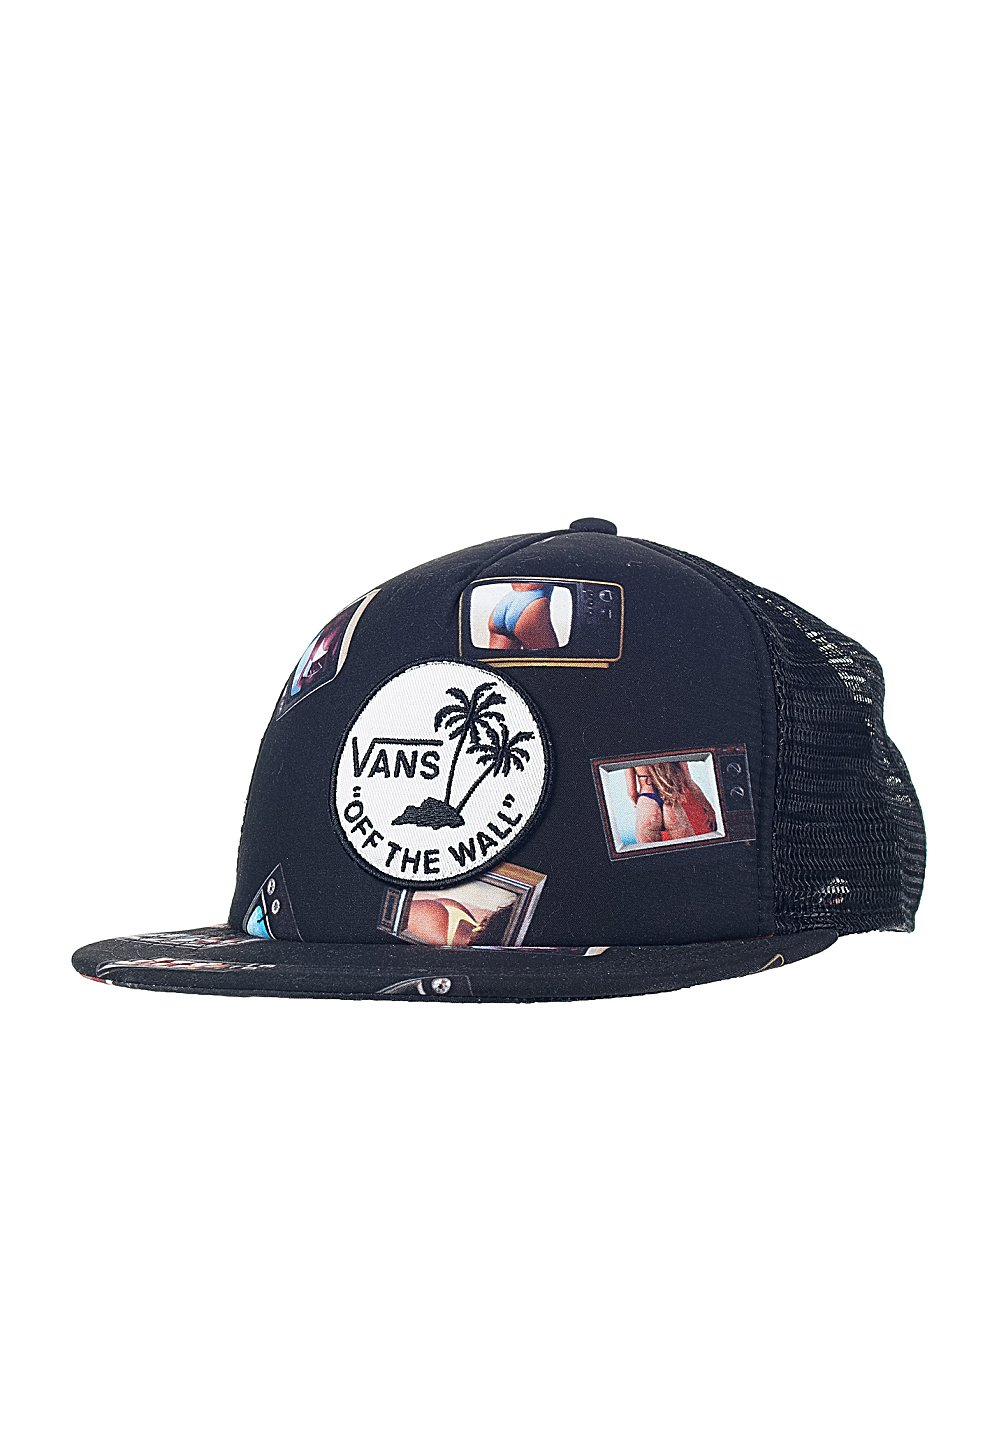 8e5aeb2904584 Amazon.com  Vans Surf Patch Trucker (Hank Bank) Hat  Sports   Outdoors